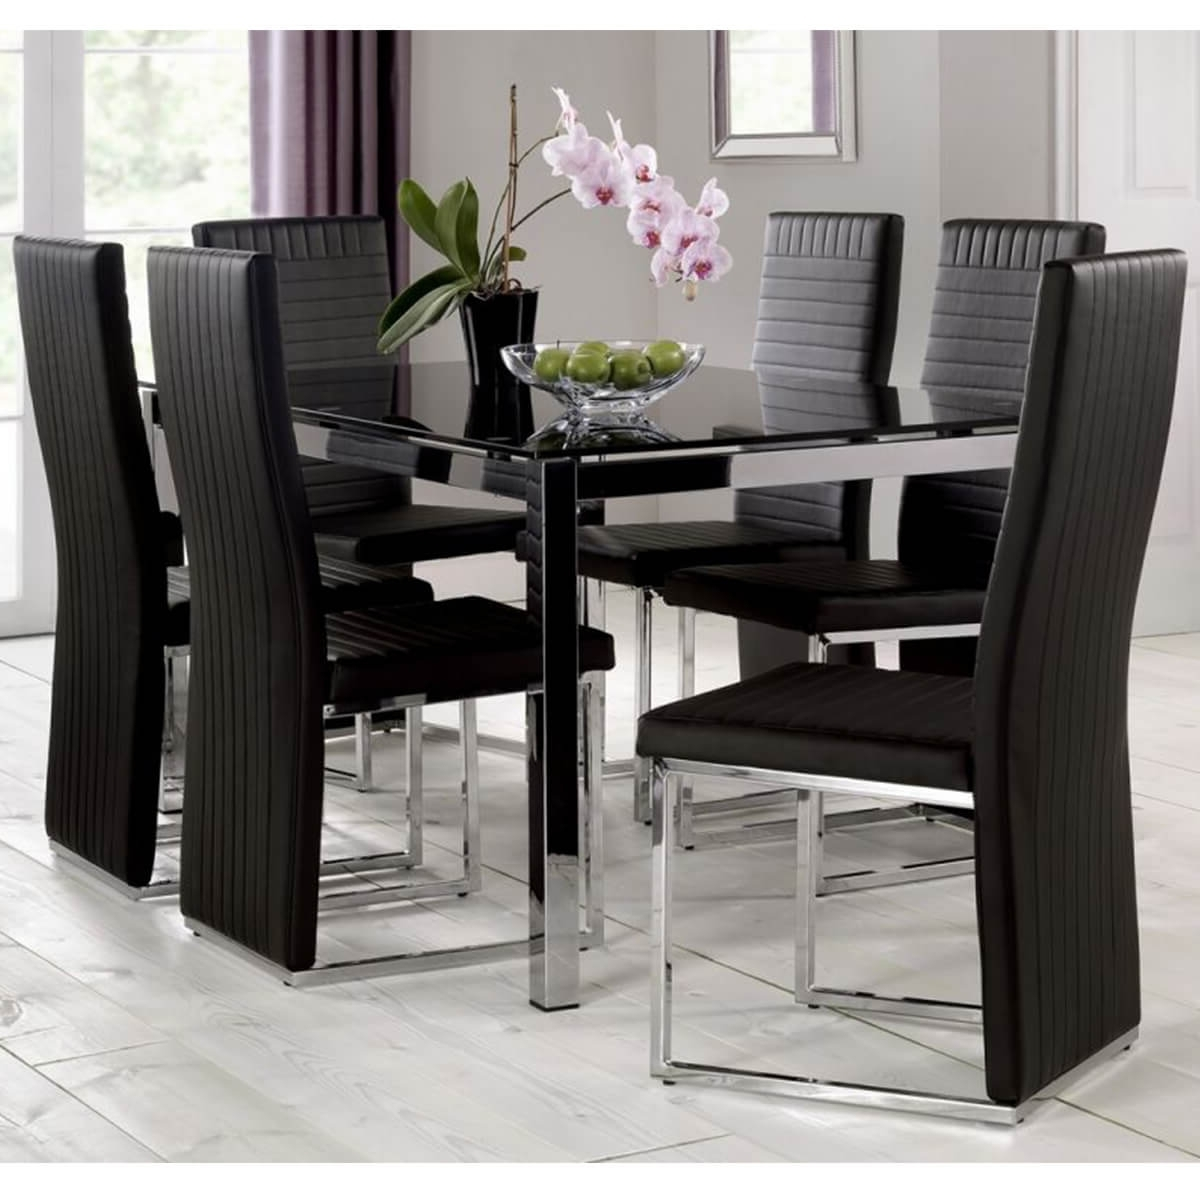 Tempo Black Dining Table With Black Chairs Throughout Newest Glass 6 Seater Dining Tables (View 24 of 25)